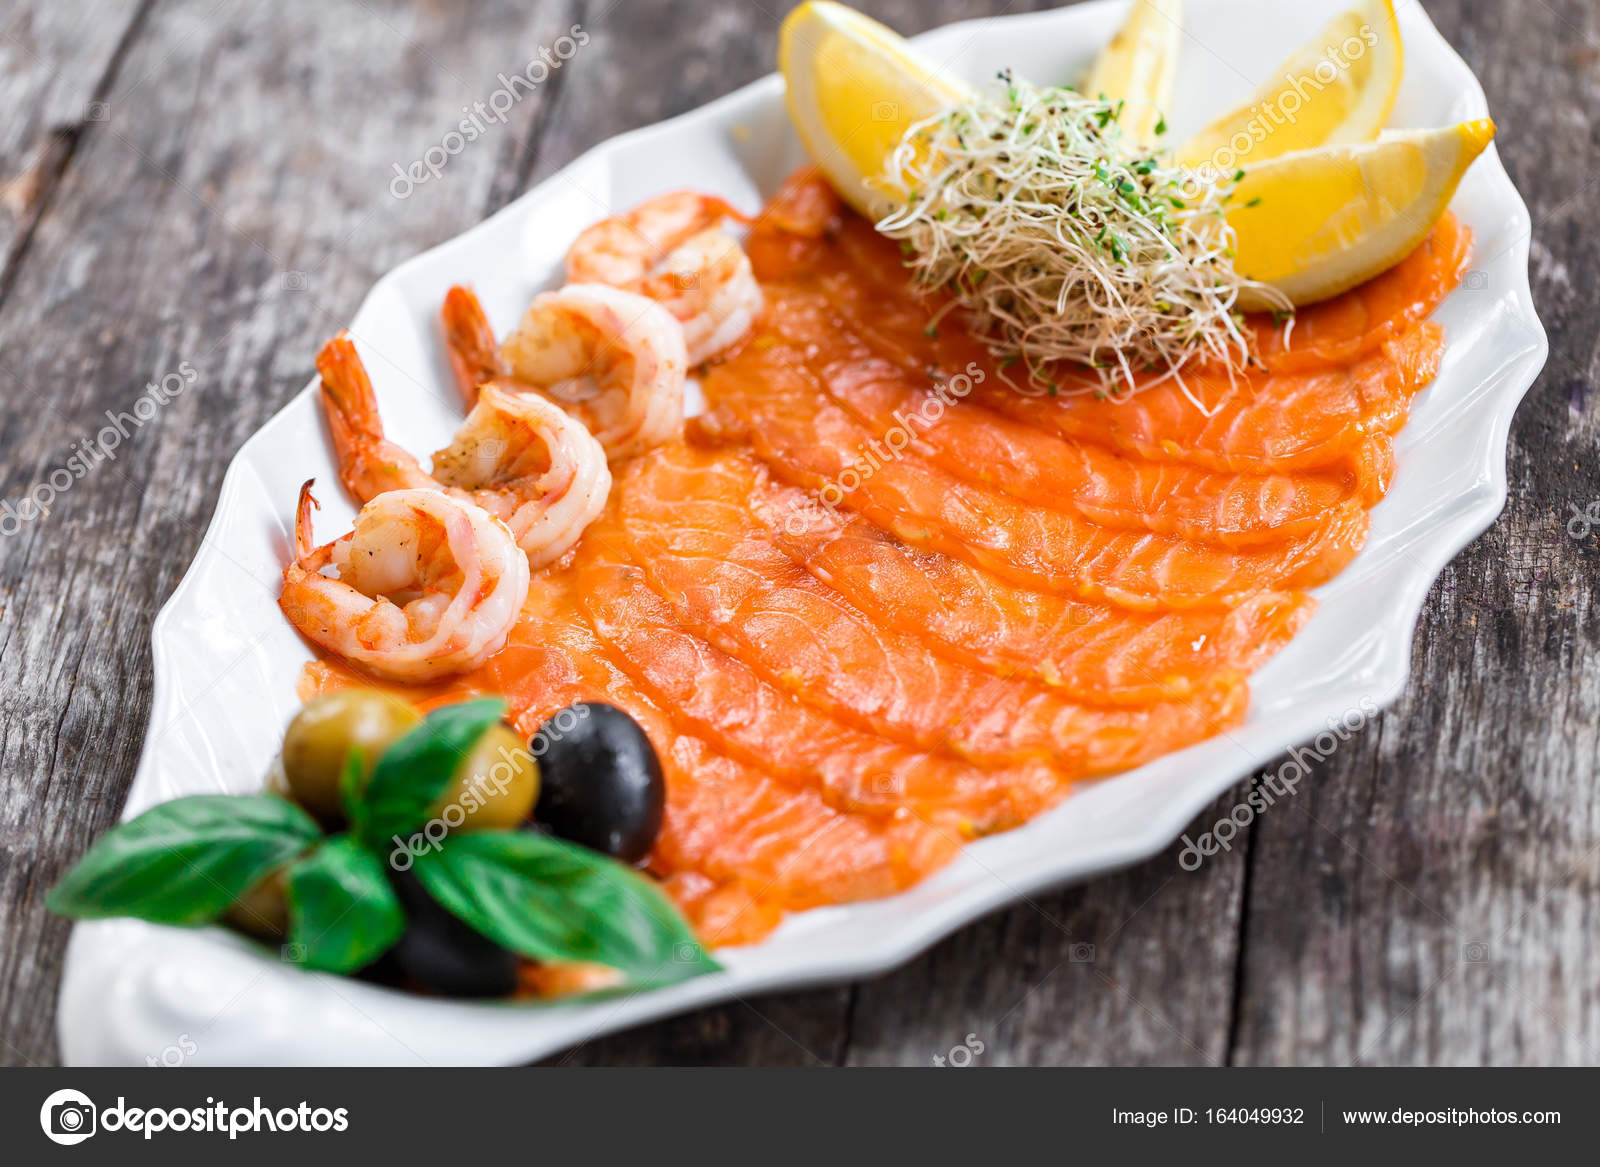 Seafood Platter With Salmon Slice And Shrimp Decorated With Olives And Lemon On Wooden Background Close Up Mediterranean Appetizers Top View Stock Photo C Valentinjukov 164049932